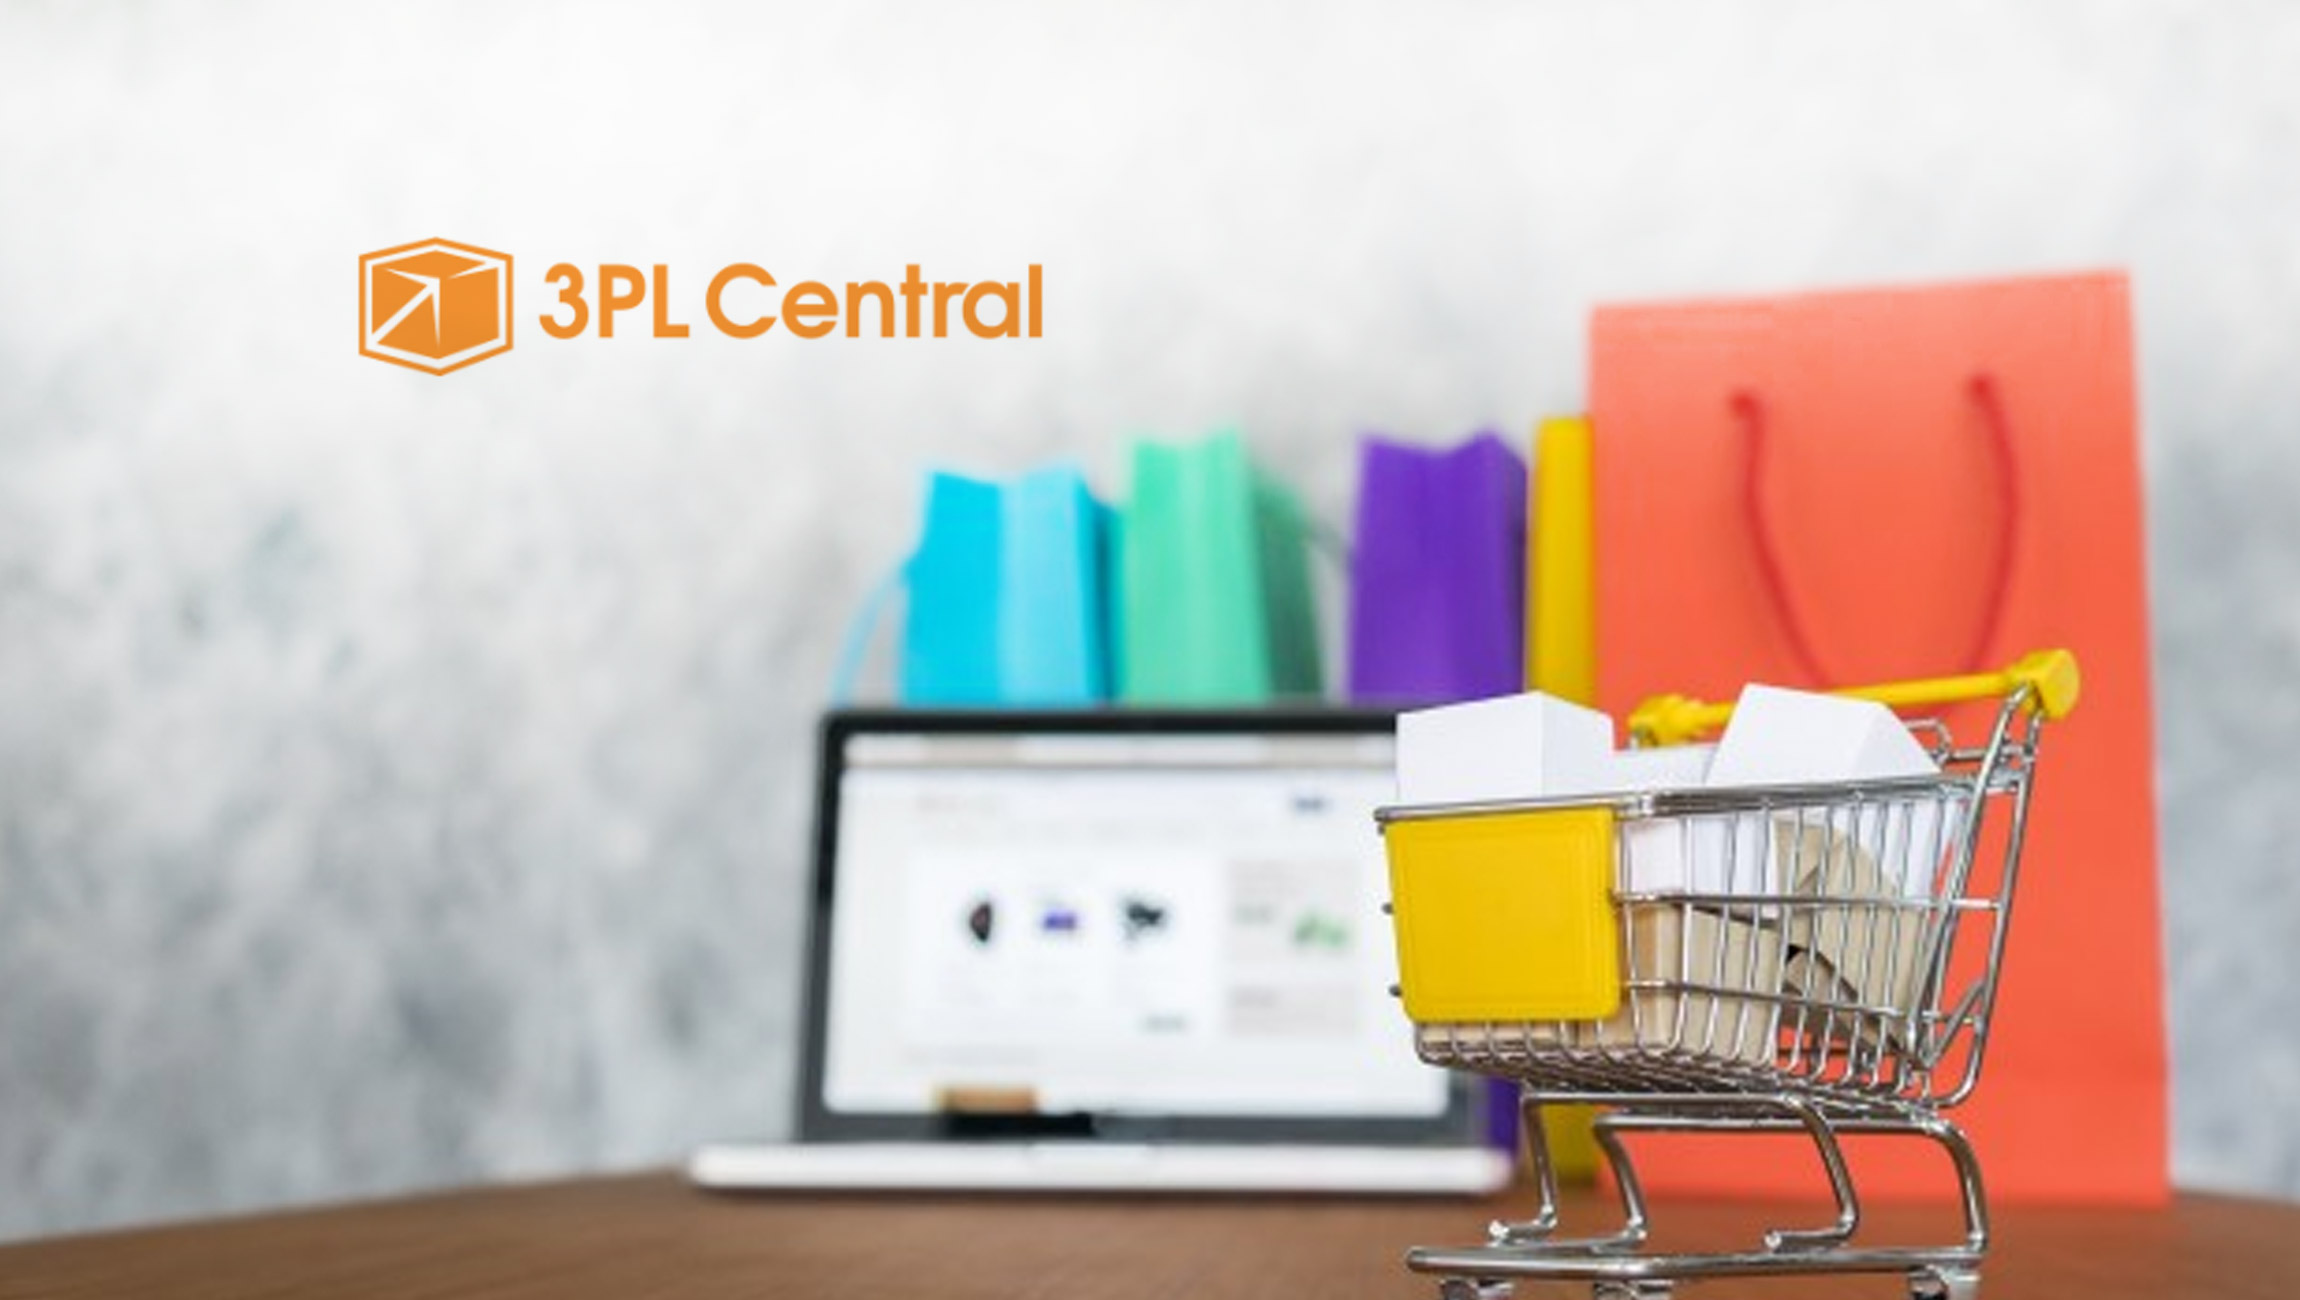 3PL Central Acquires Skubana, Expanding Inventory And Order Management Offering For Ecommerce